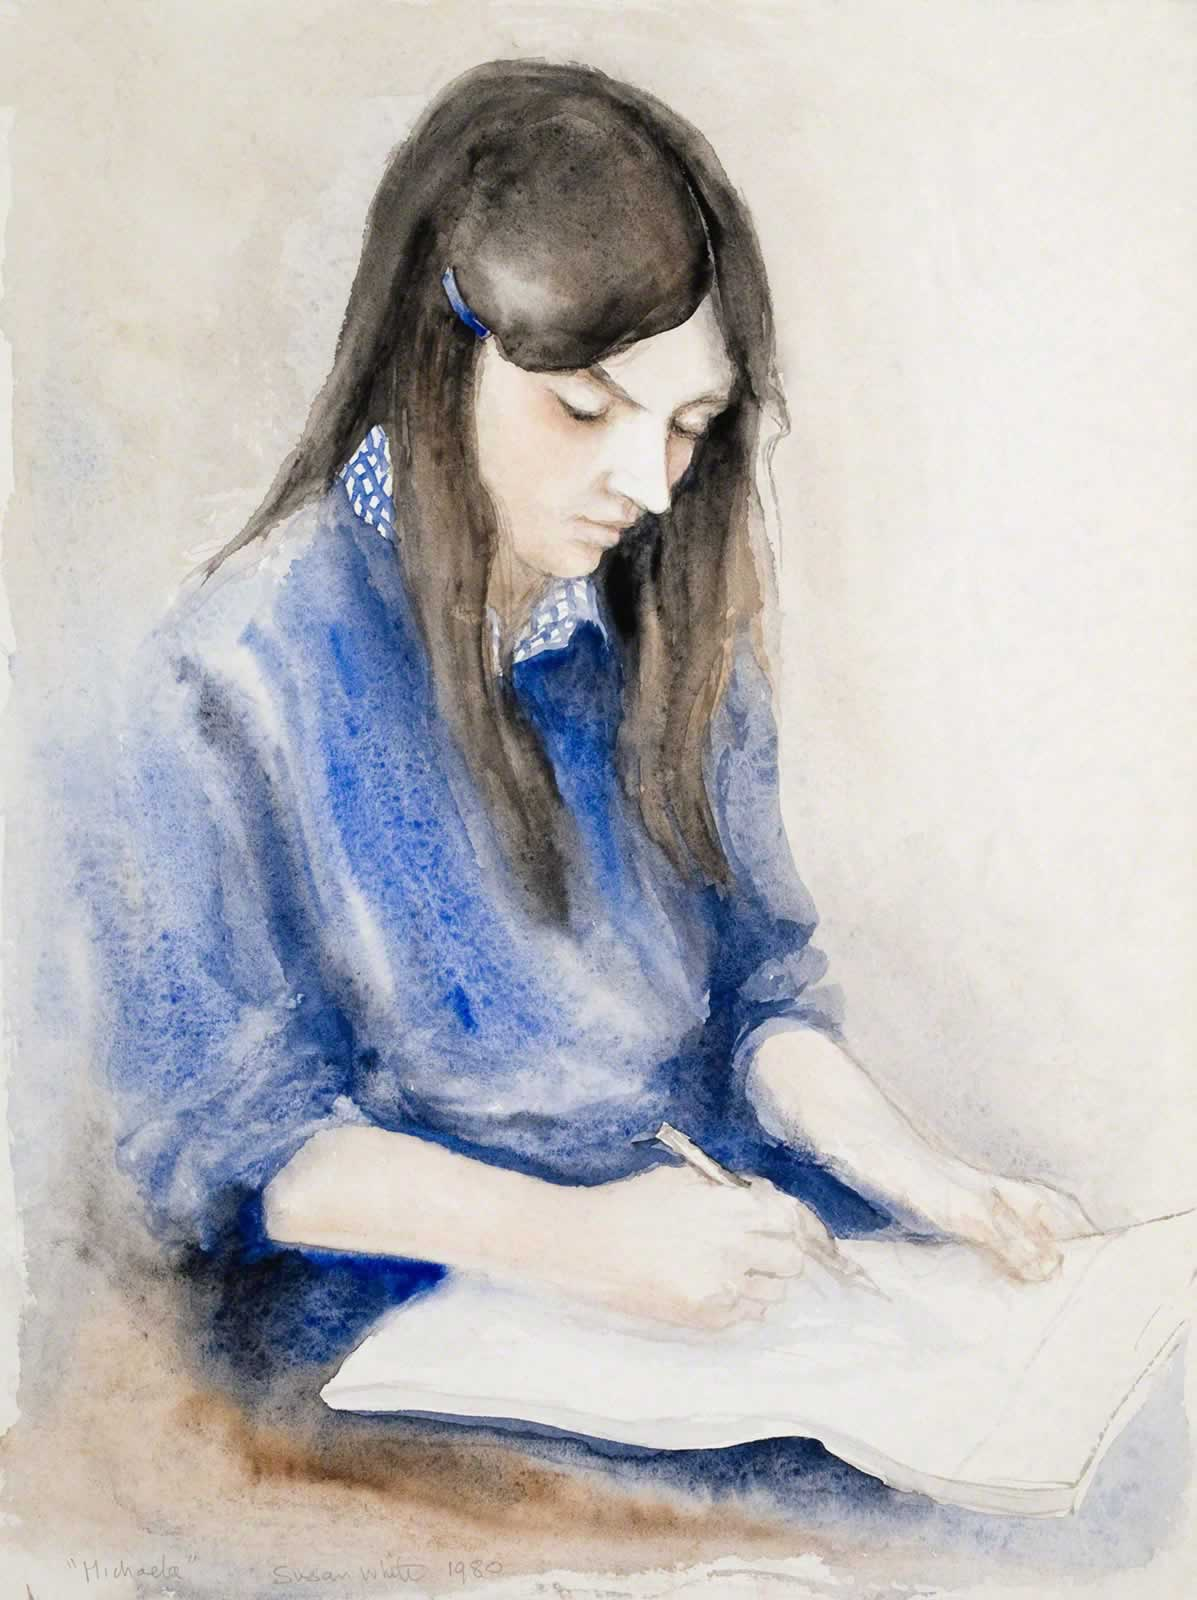 Michaela in ultramarine blue, drawing by Susan Dorothea White